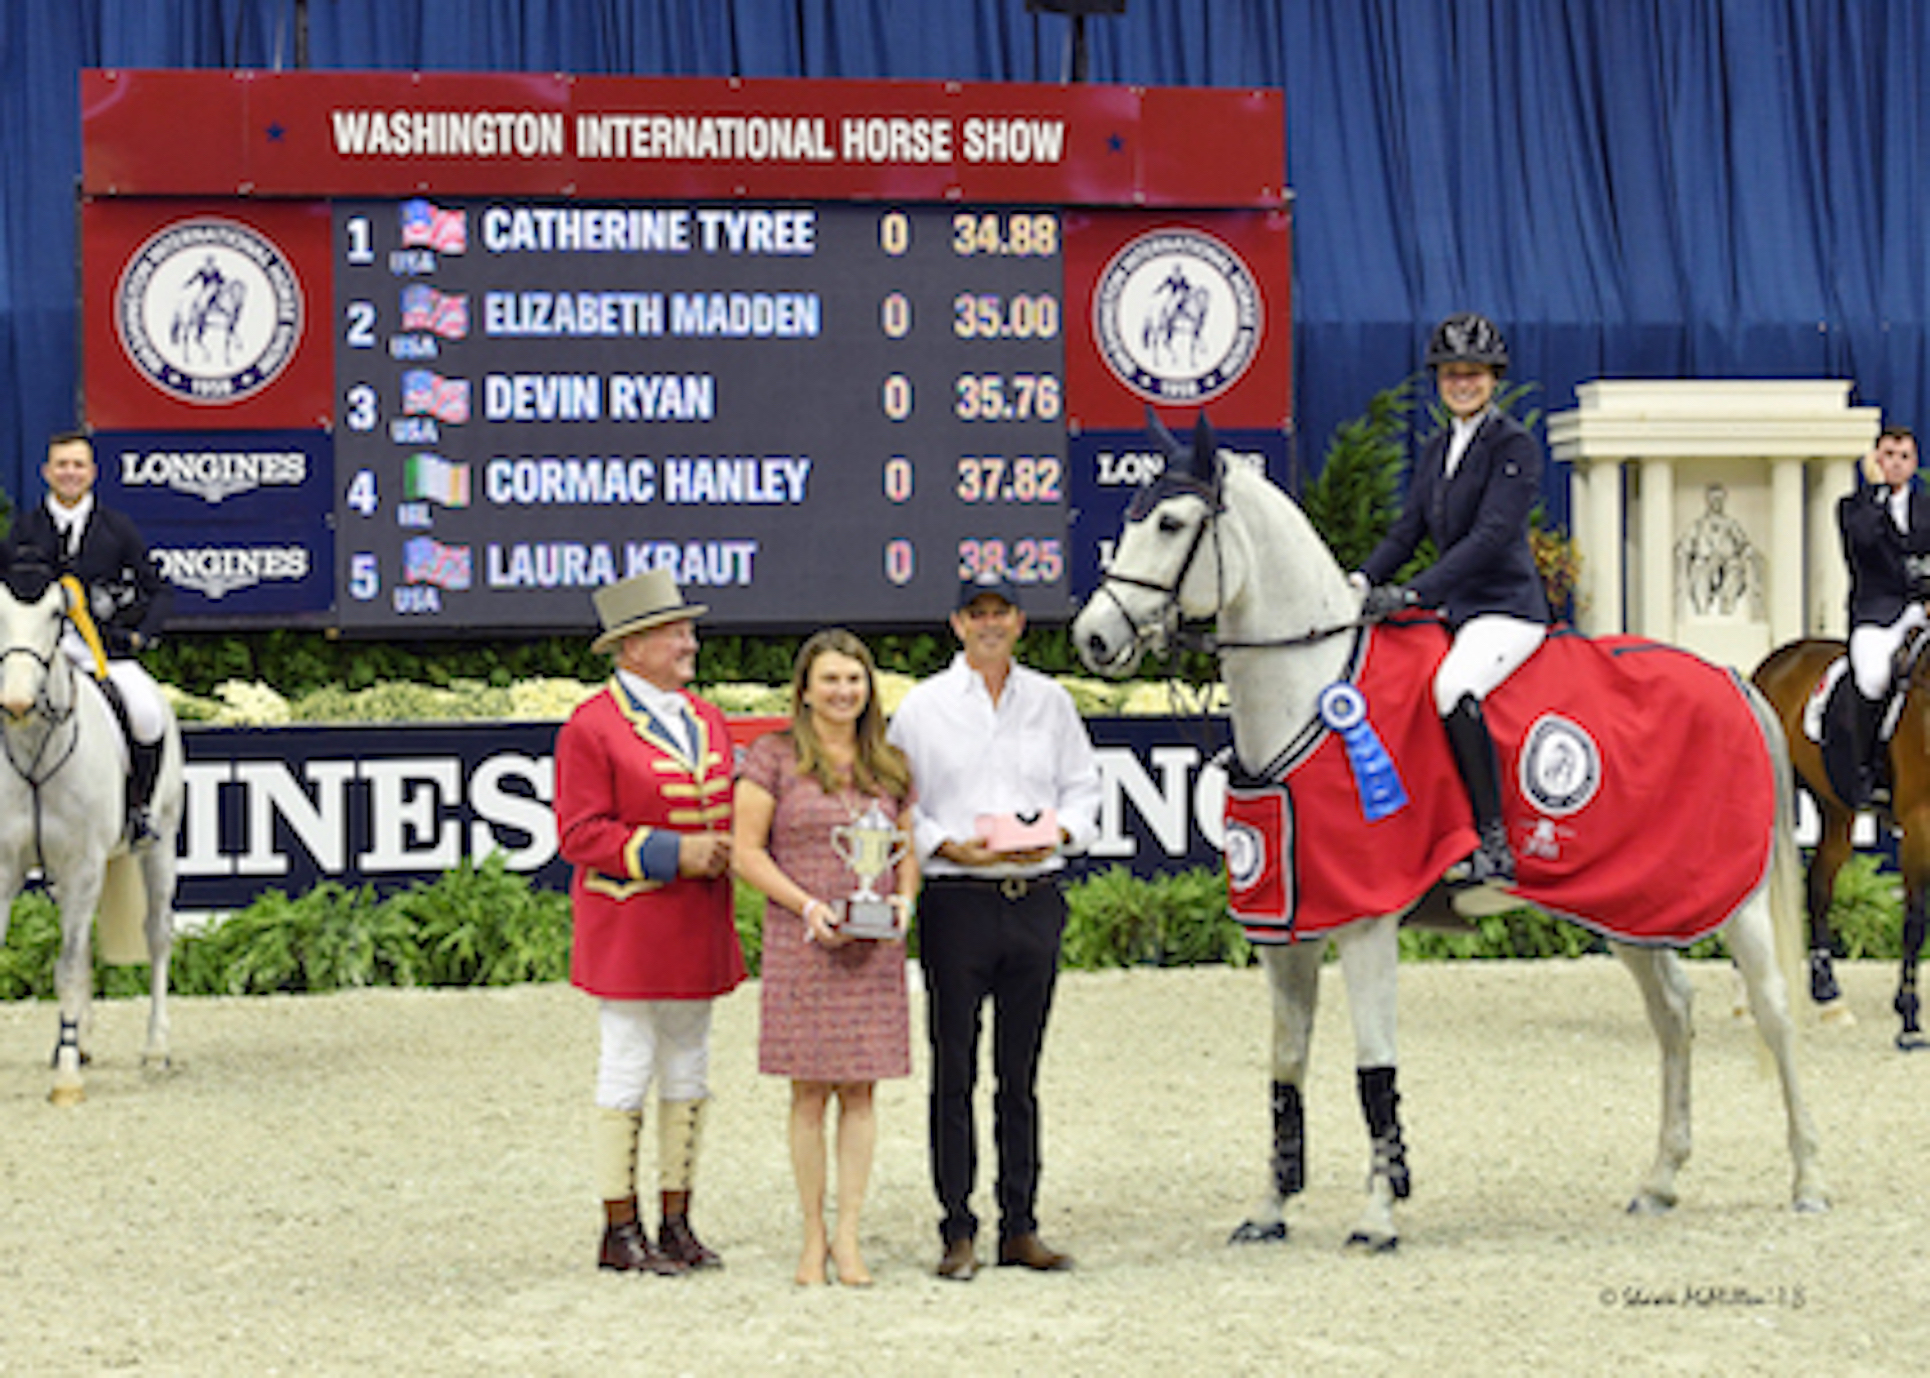 catherine_tyree-us-bokai-wihs_awards-shawn_mcmillen_photography.jpg